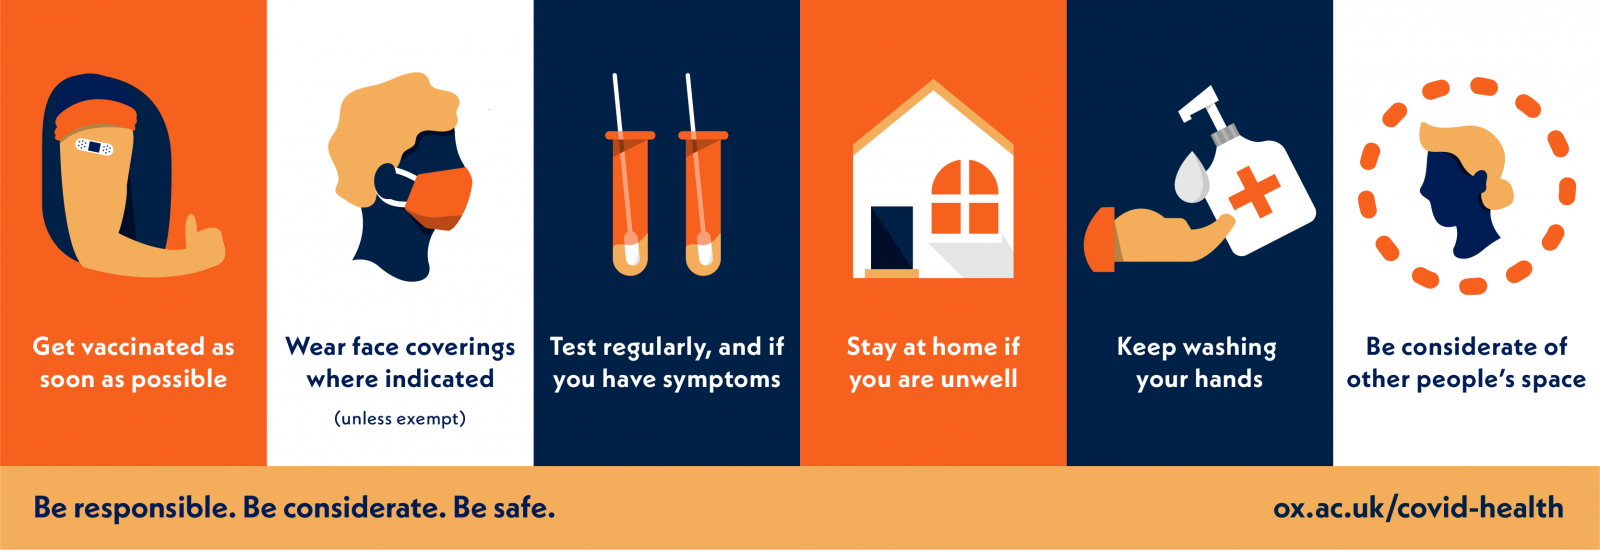 Six steps to stay COVID-safe